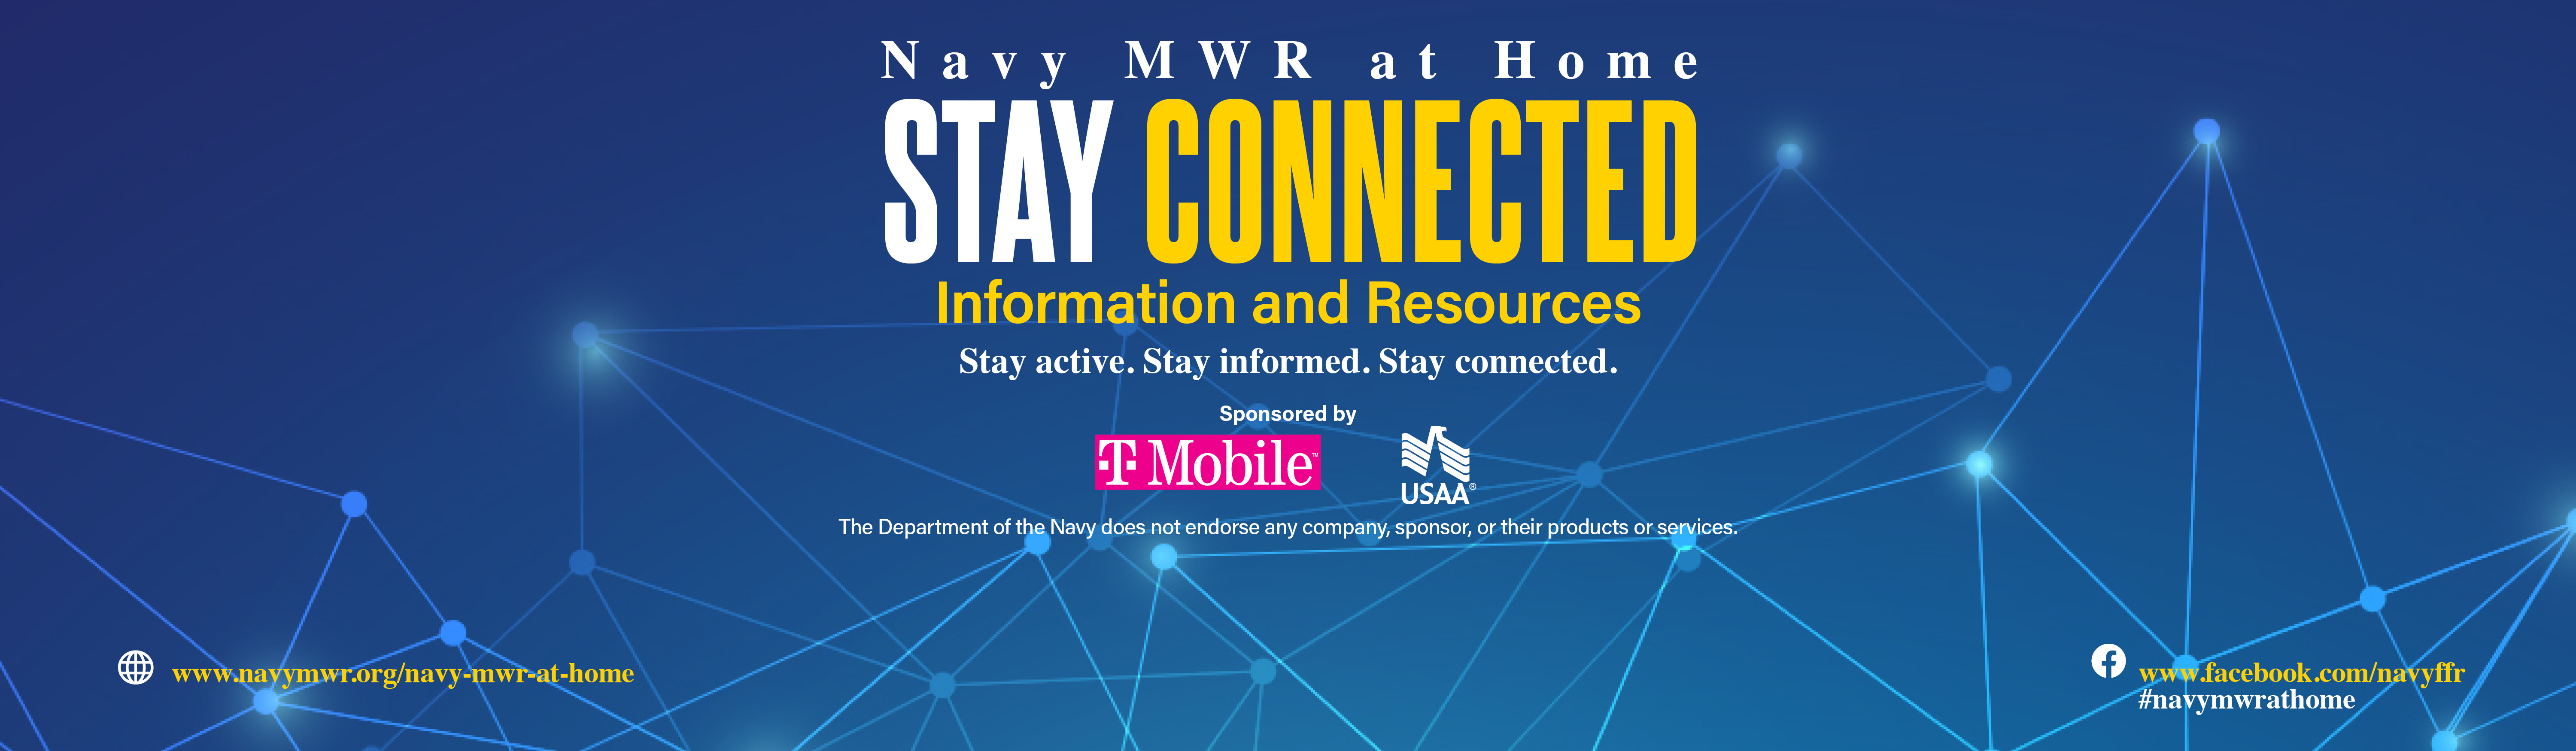 Navy MWR at Home_Stay Connected-web-bnnr-Sponsors1.jpg